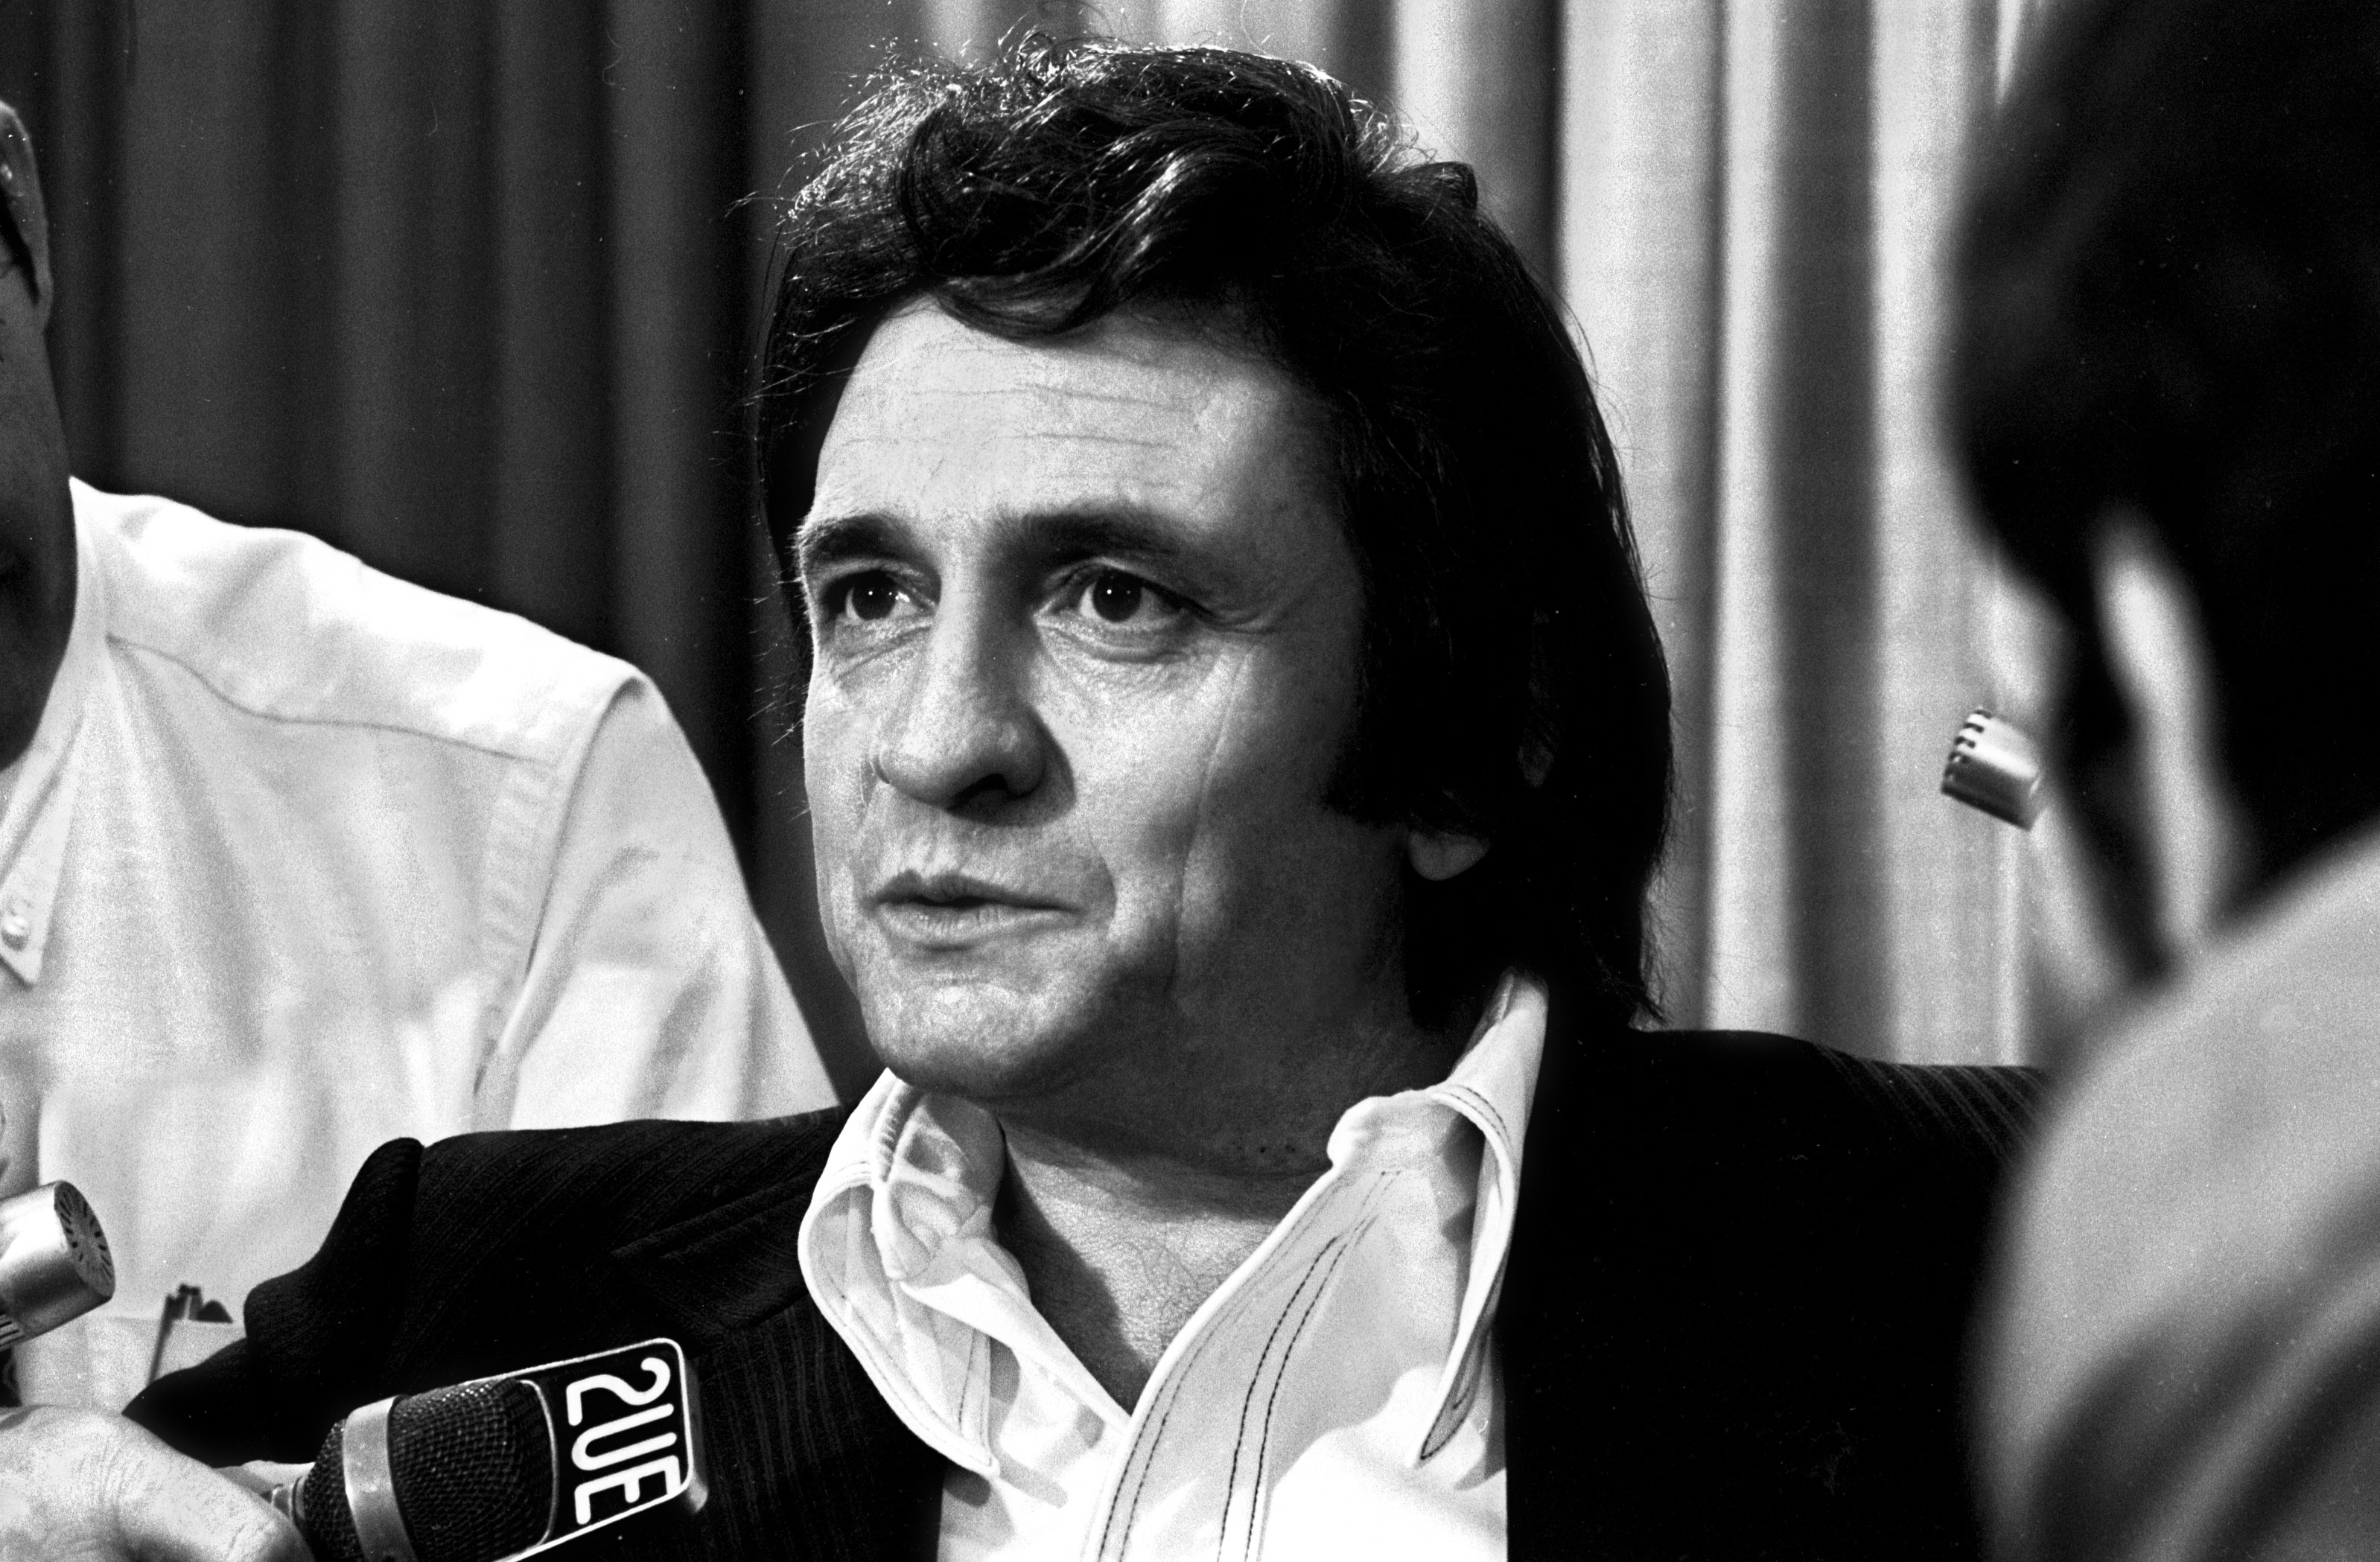 Johnny Cash and his wife June Carter arrived in Australia with their son John carter Cash on